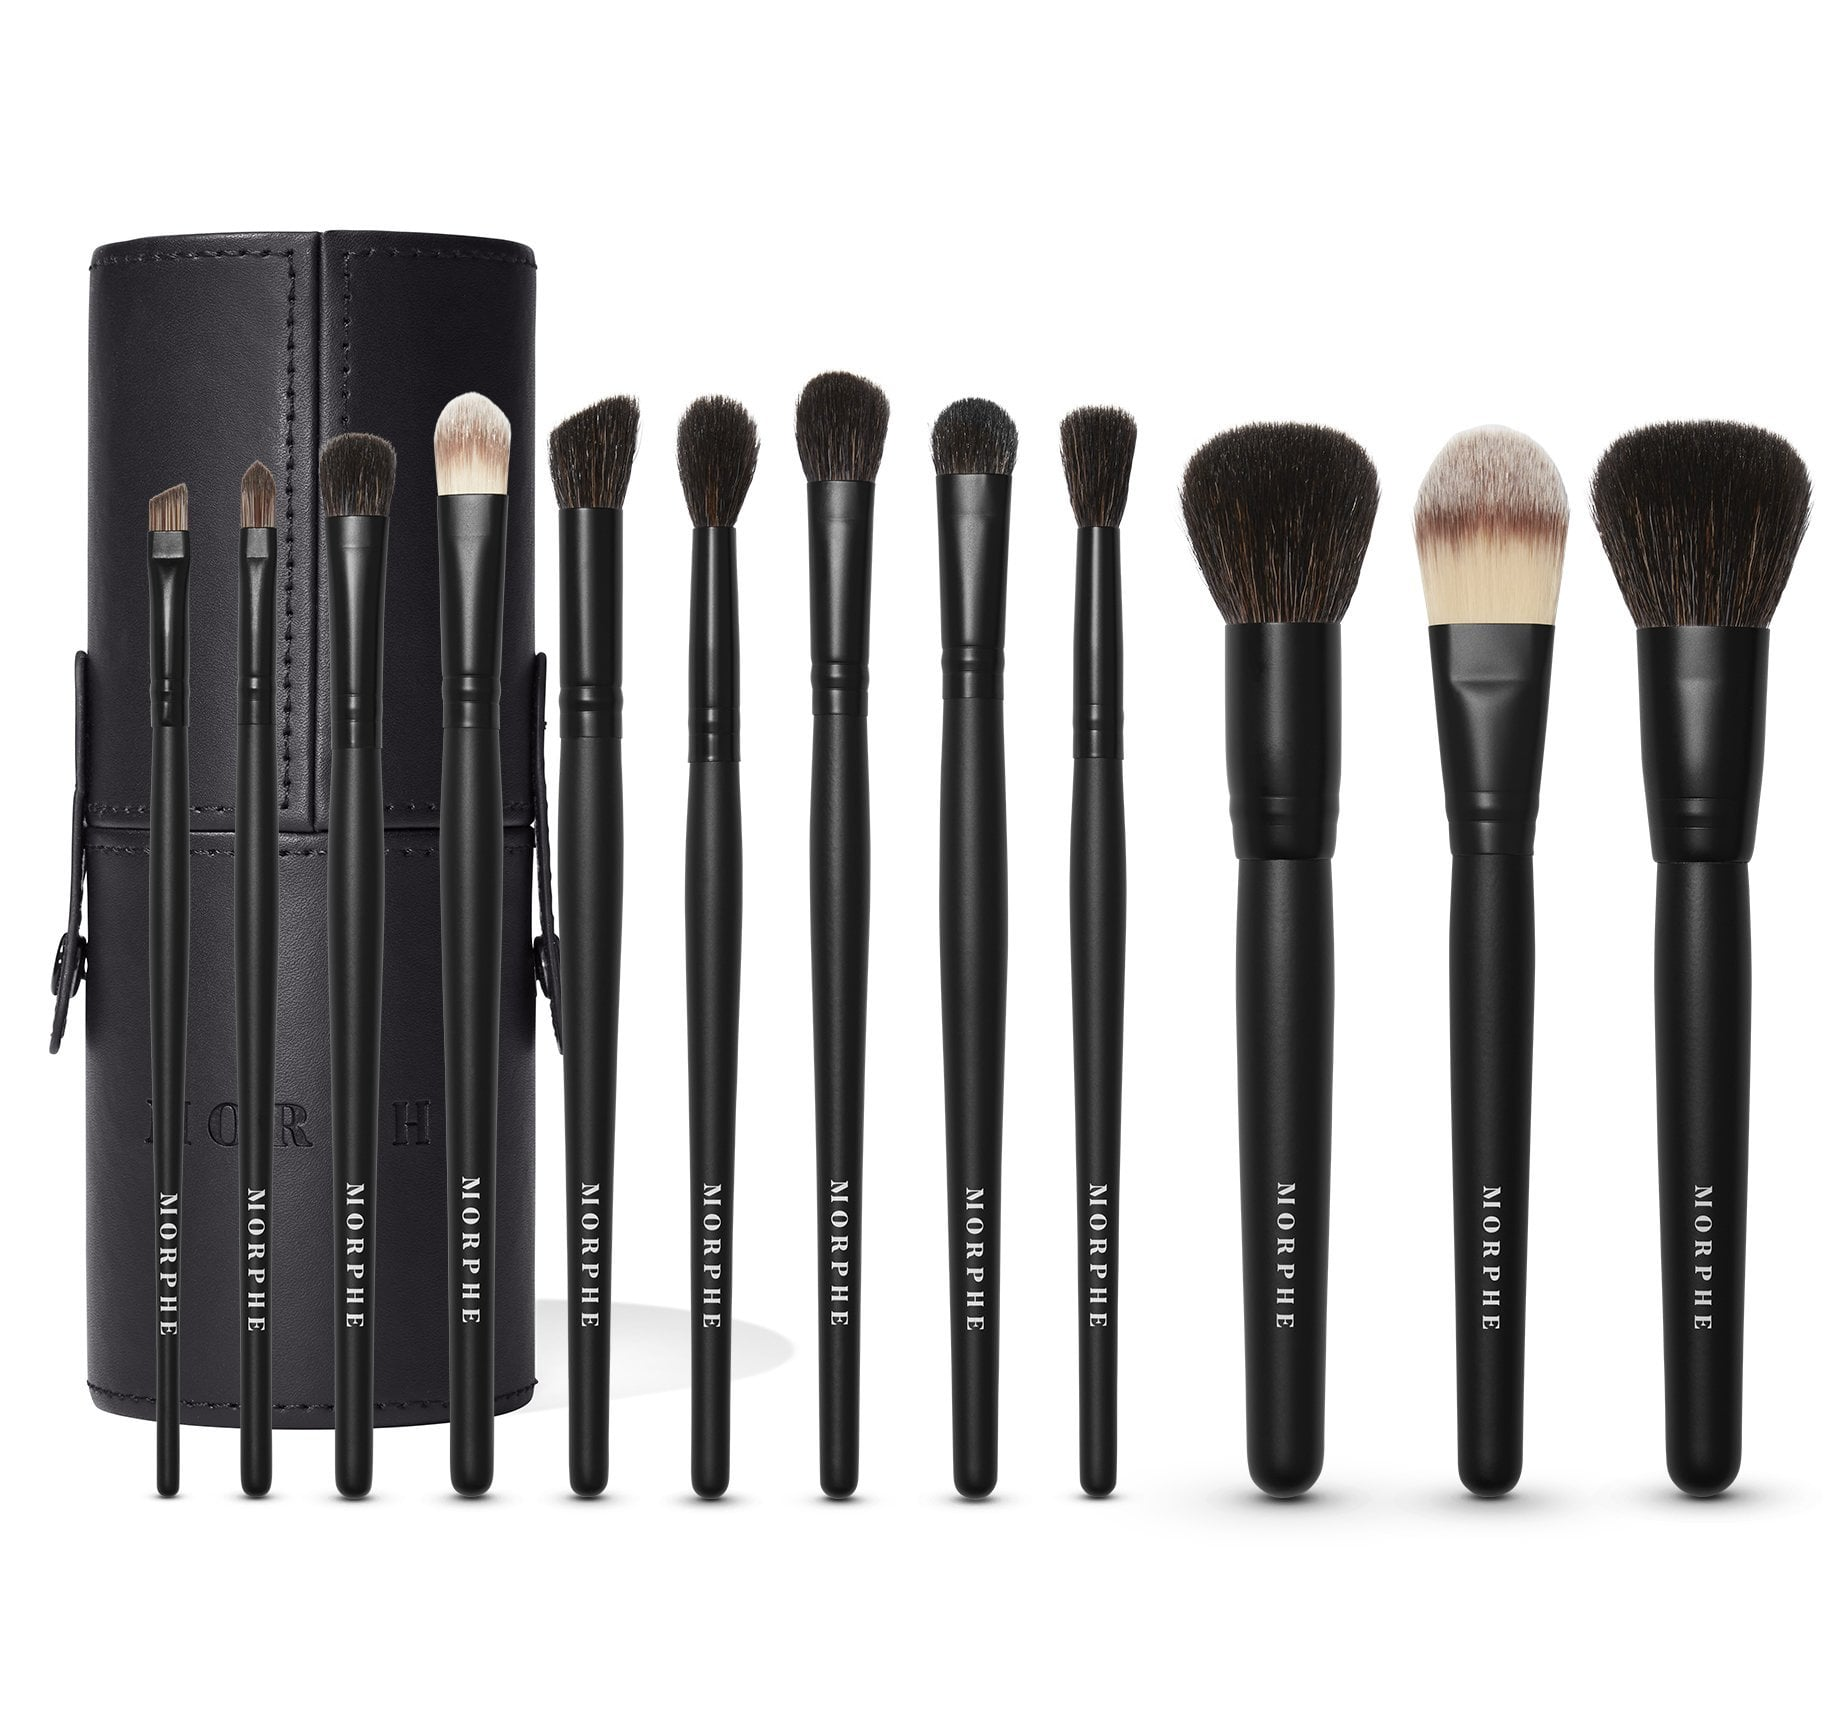 11 Best Morphe Products To Shop Popsugar Beauty Makeup (116) skincare (7) tools & brushes (41) mini size (2). 11 best morphe products to shop